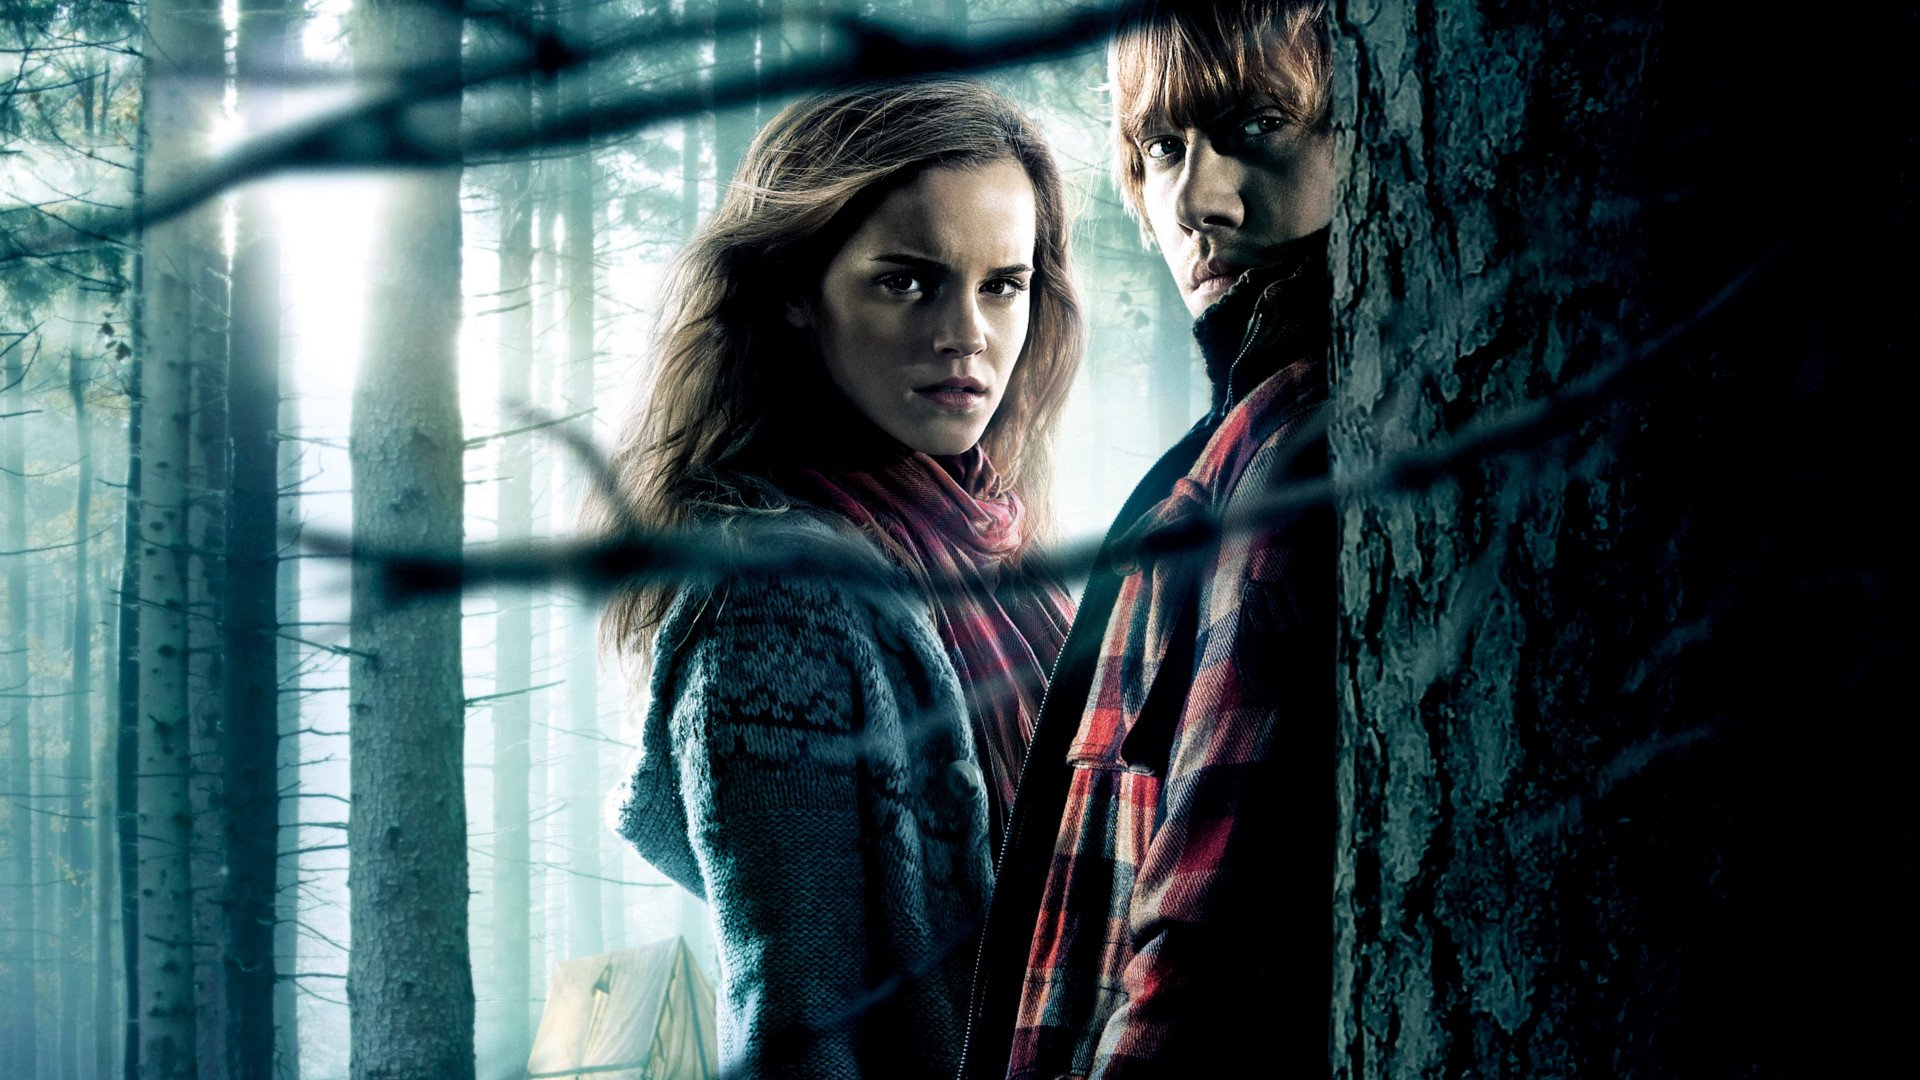 Harry Potter And The Deathly Hallows: Part 1 HD Wallpaper